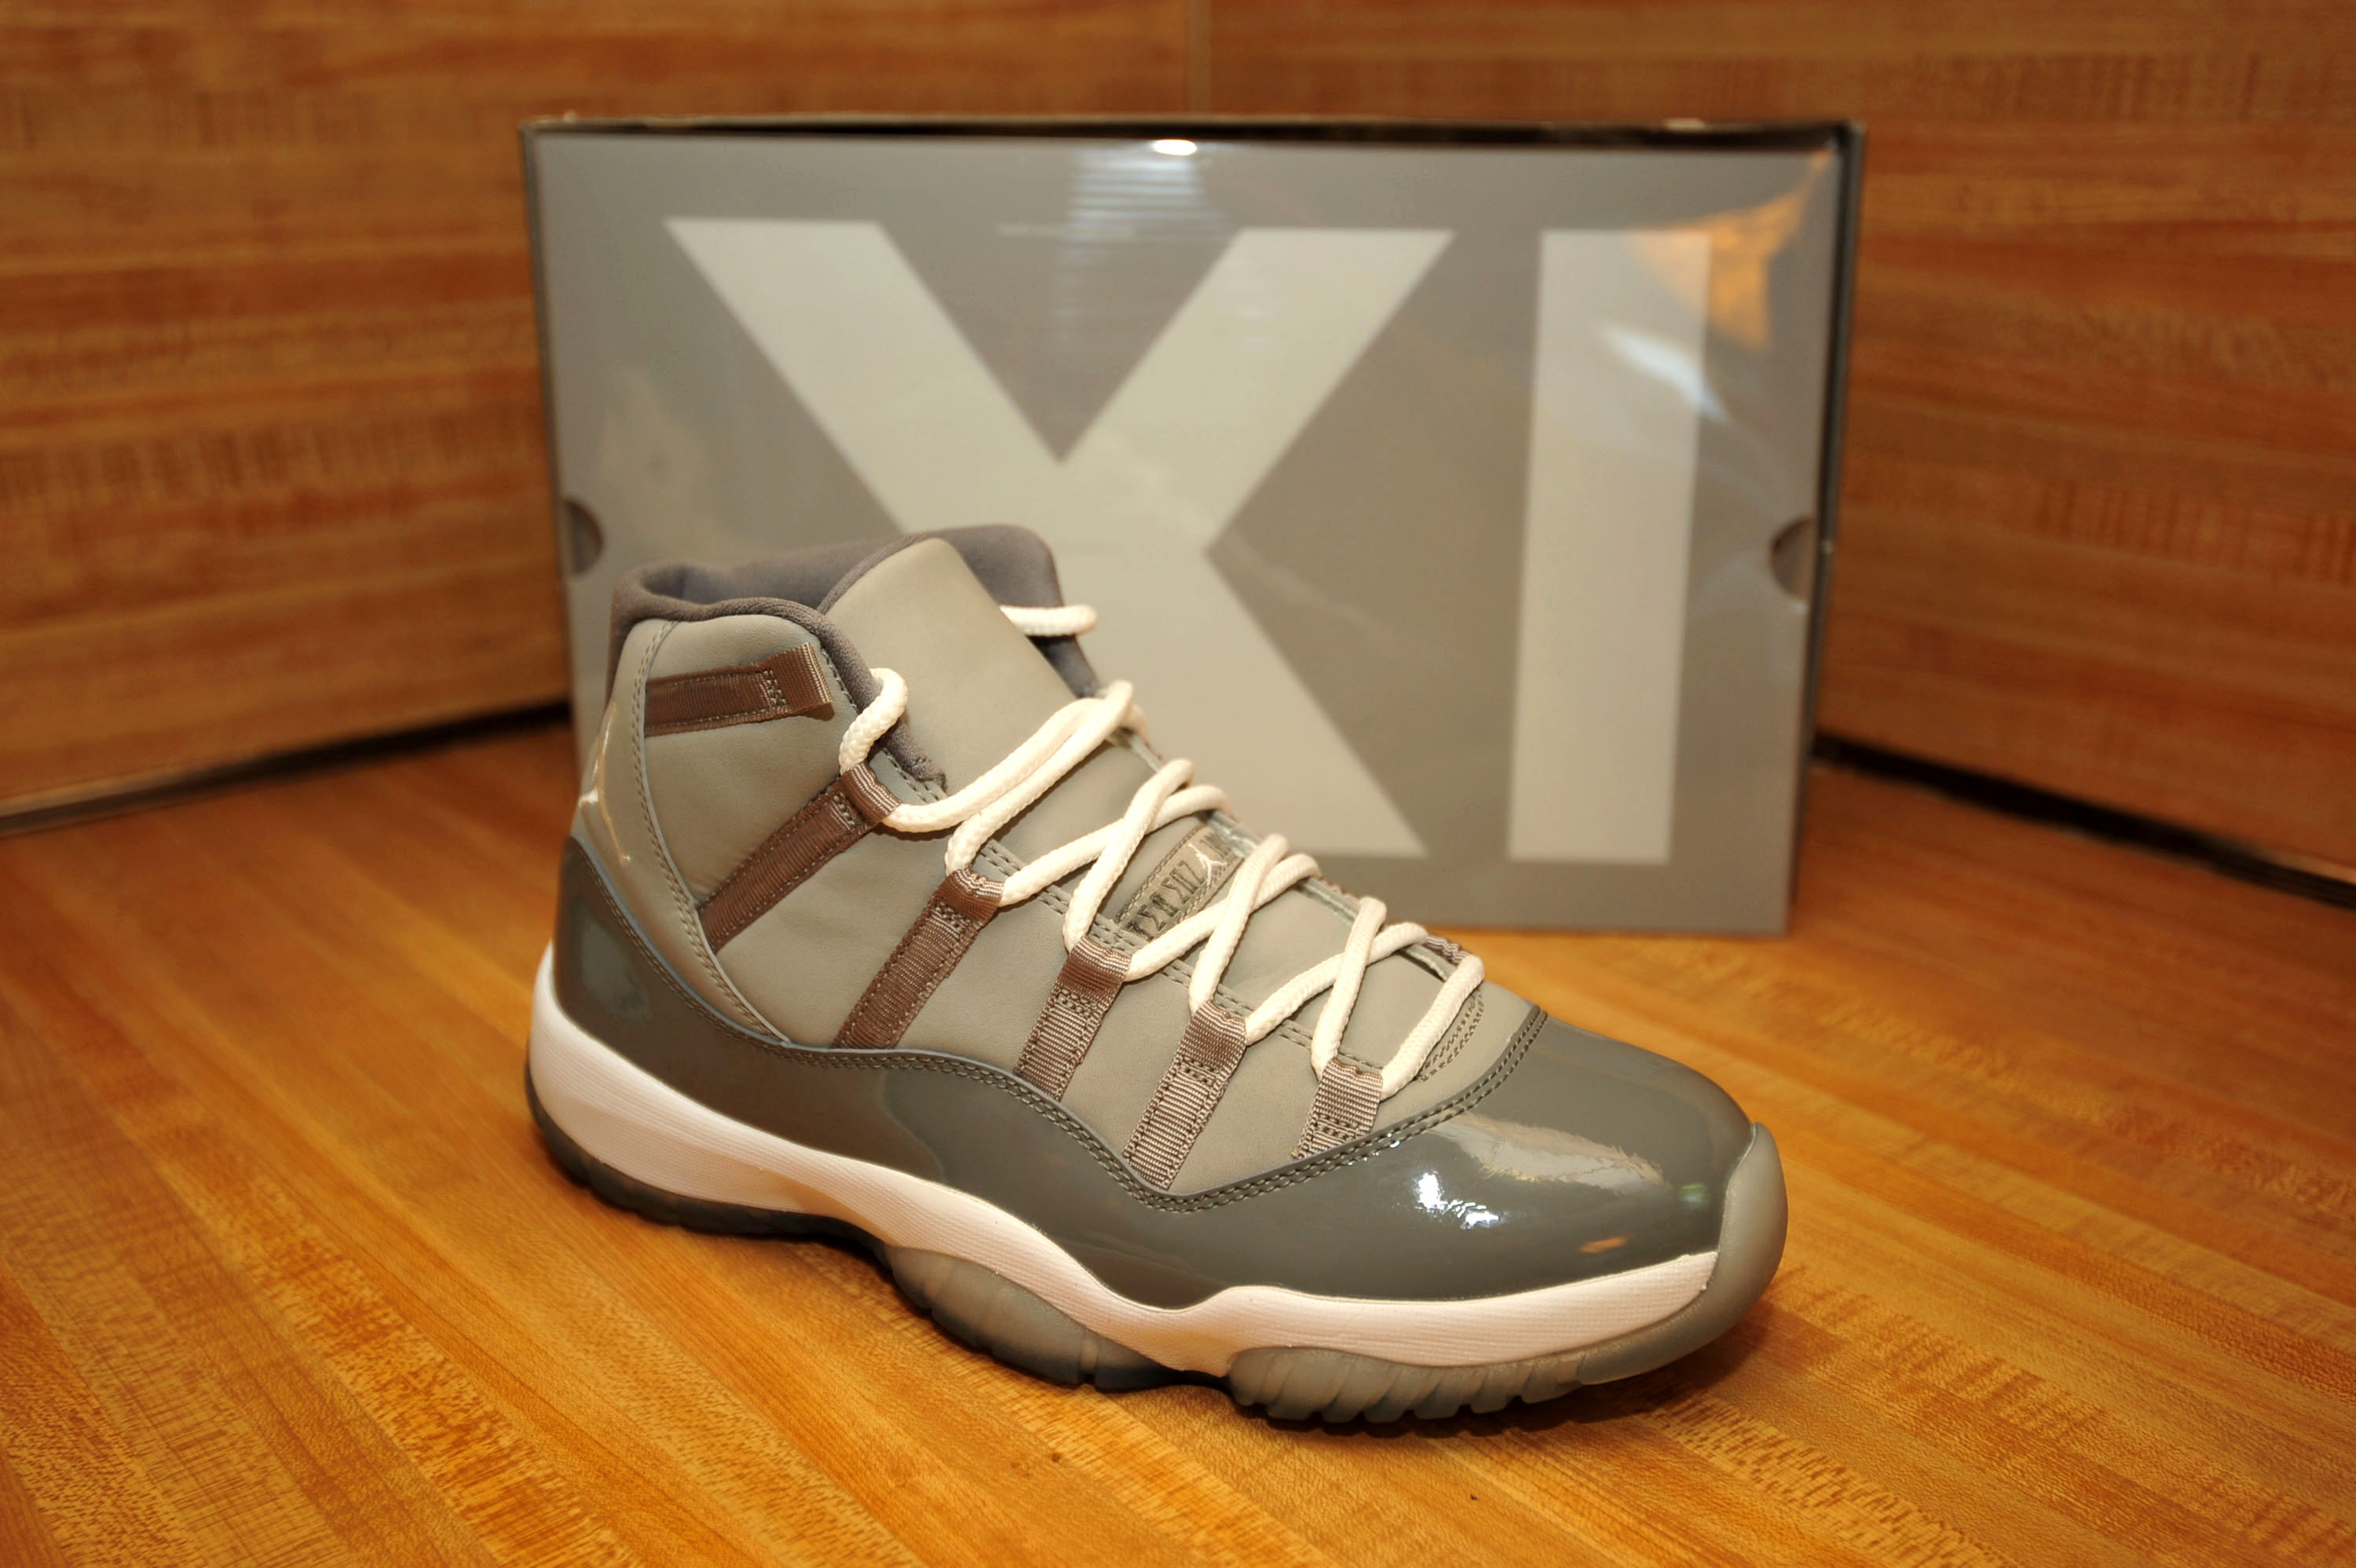 best price air jordan retro 11 silver brown a4c9e ab6d7 007c6e0fa